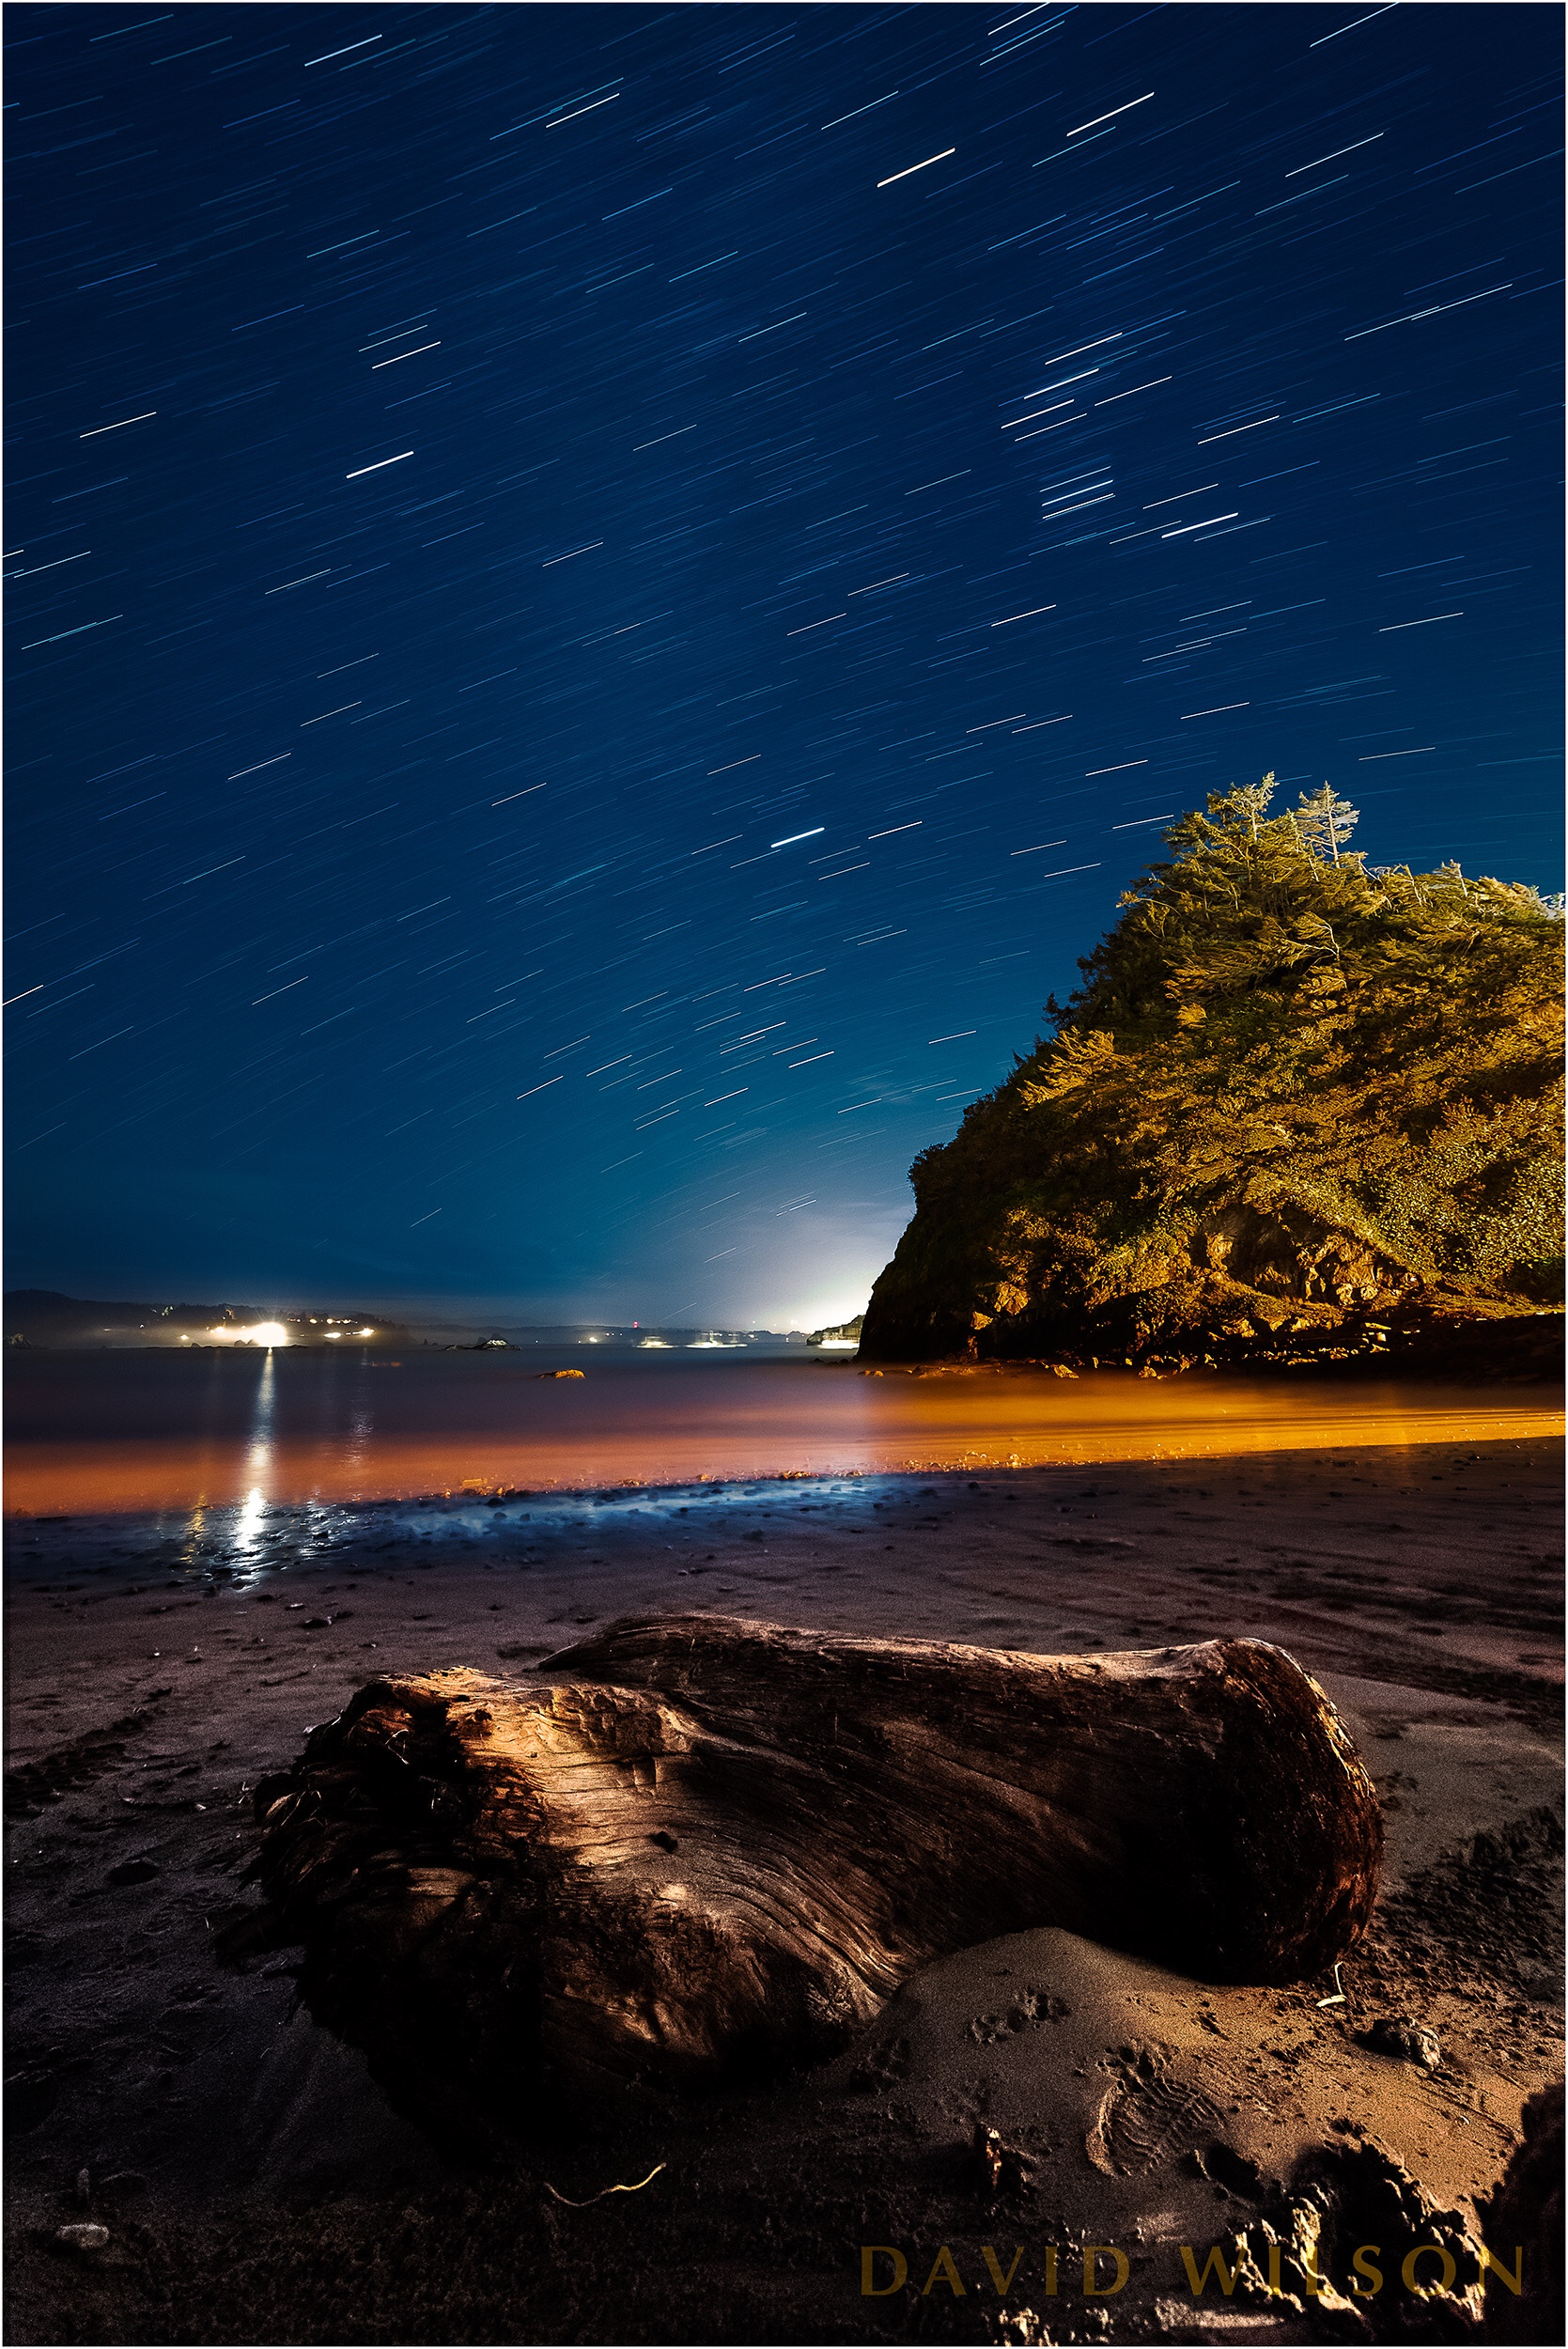 Boat Launch Beach at Trinidad, California beneath star trails in the night sky.